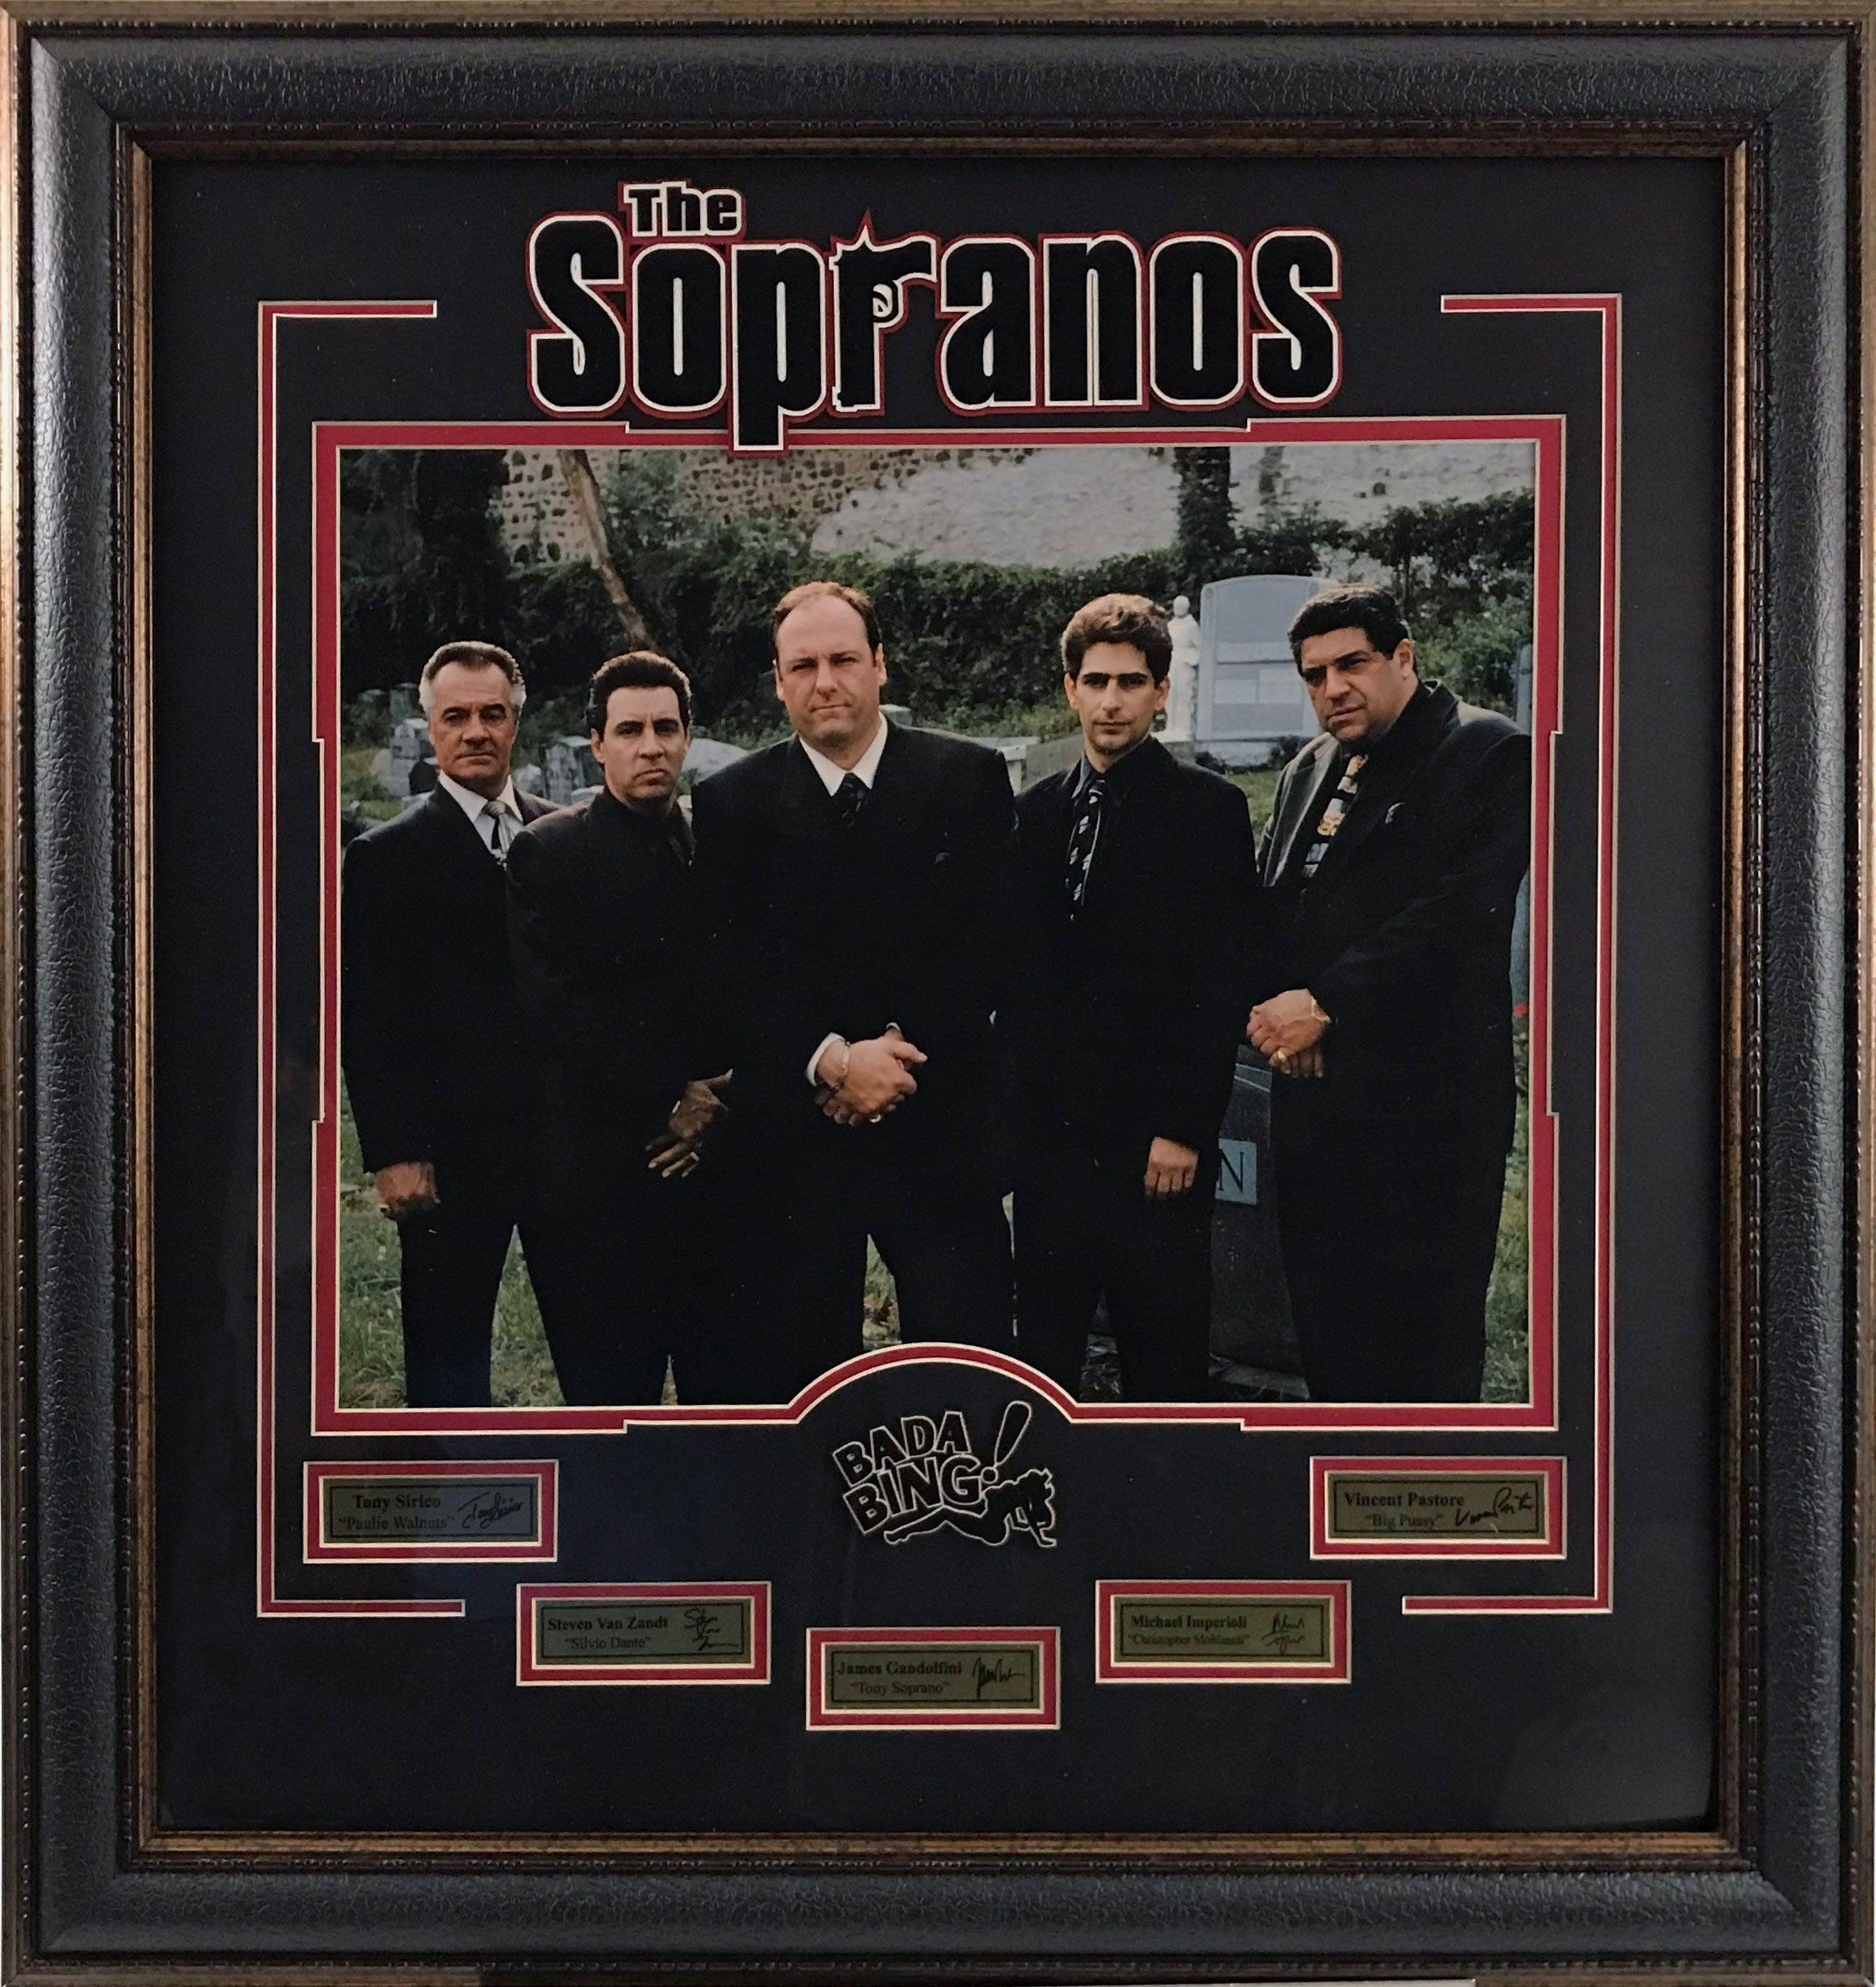 Sopranos Graveyard Photo with Laser Signatures